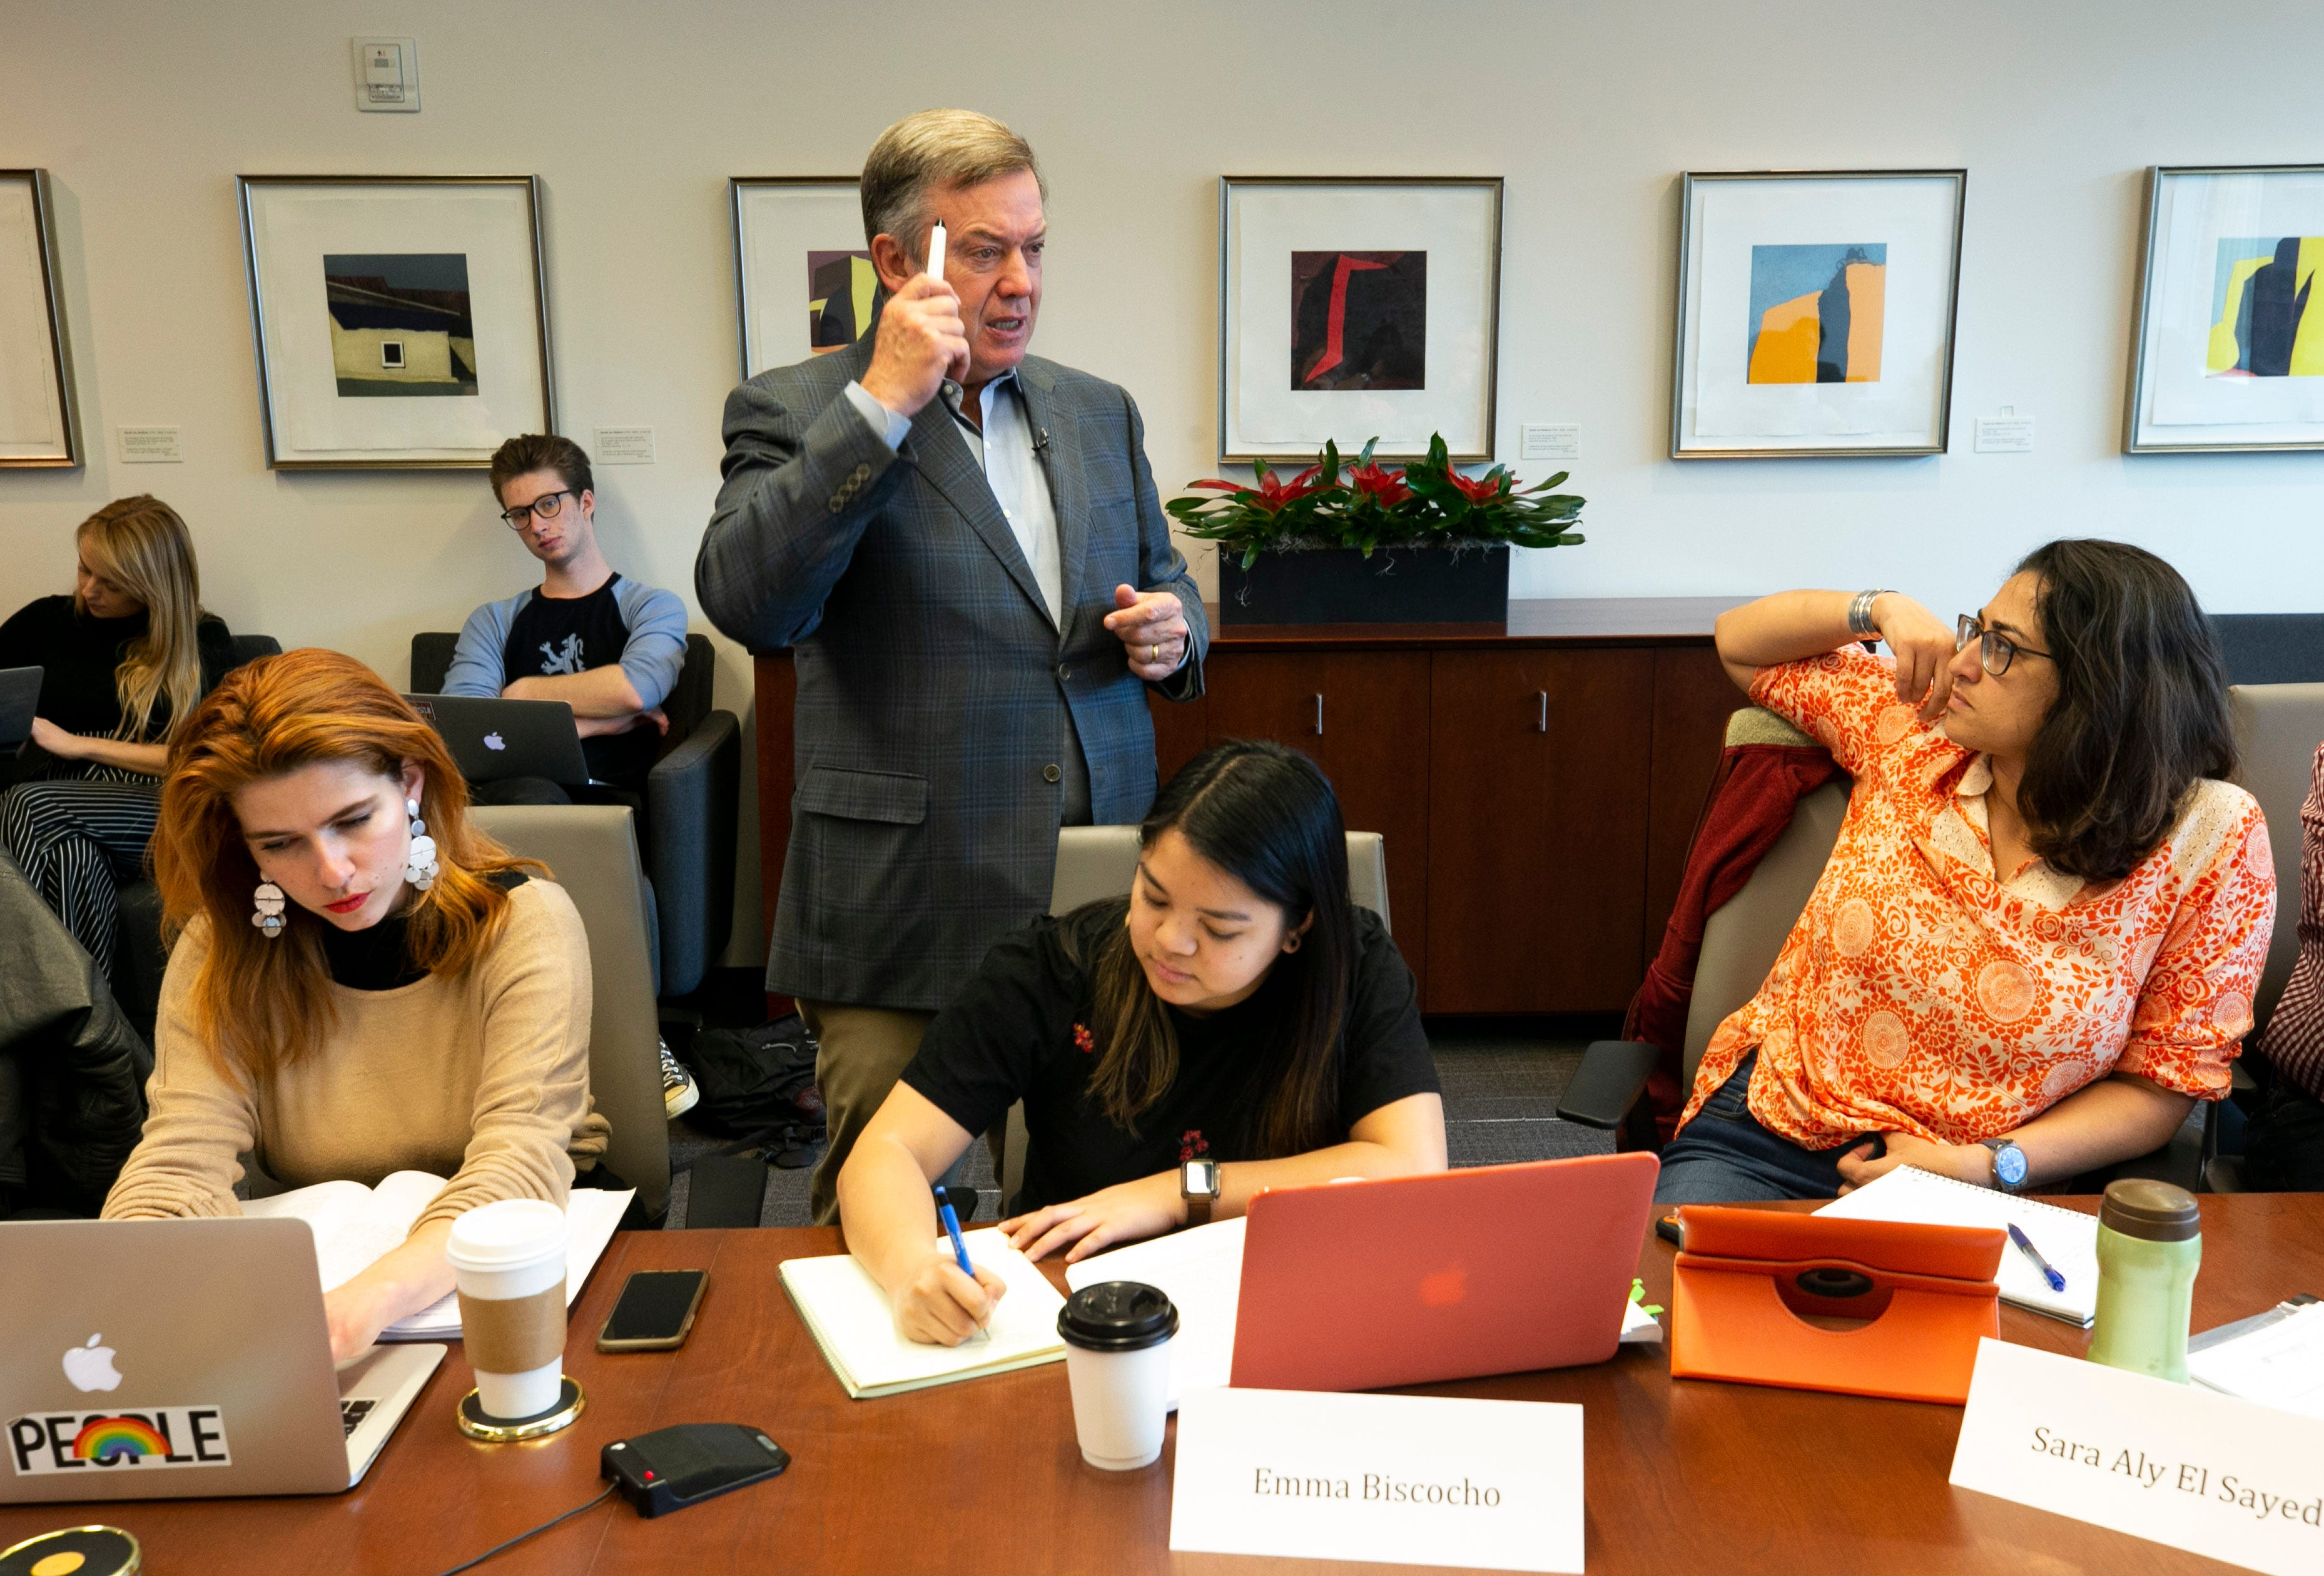 ASU President Michael Crow smiles while teaching the multi-discplinary Science, Technology and Public Affairs class to (from left at front) masters student Sarah Lords, masters student Emma Biscocho and doctoral candidate Sara Aly El Sayed, along with other ASU doctoral, masters and undergraduate students at the Fulton Center at ASU in Tempe on Jan. 30, 2019.